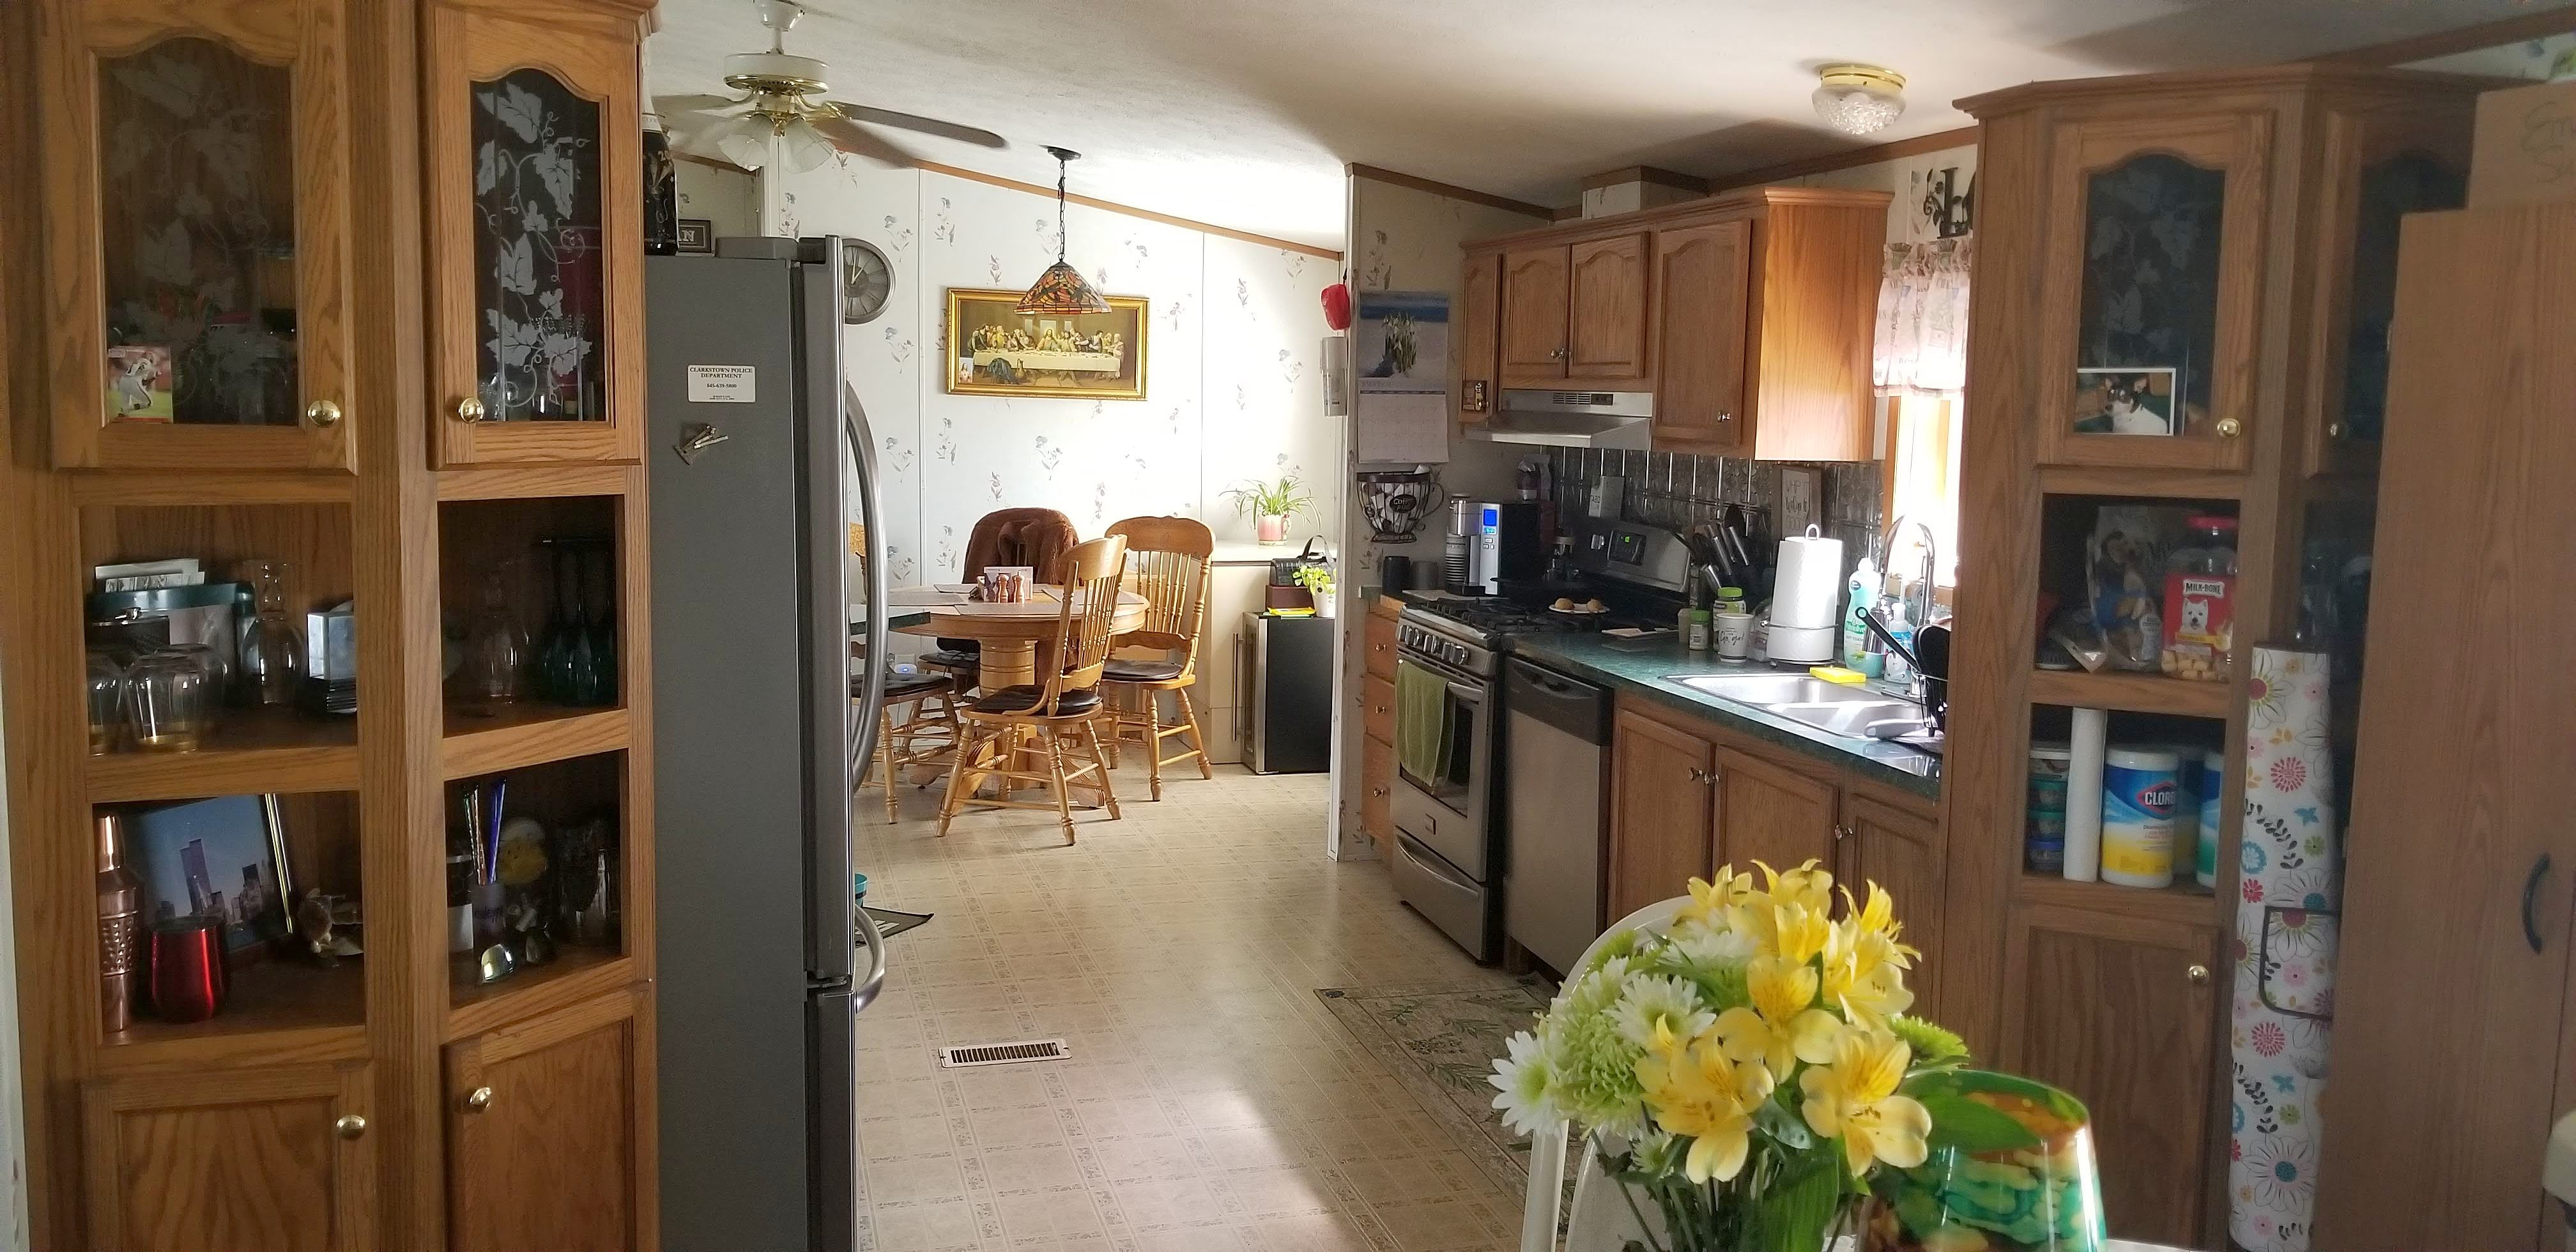 4 Bedrooms / 2 Bathrooms - Est. $1,234.00 / Month* for rent in Nanuet, NY